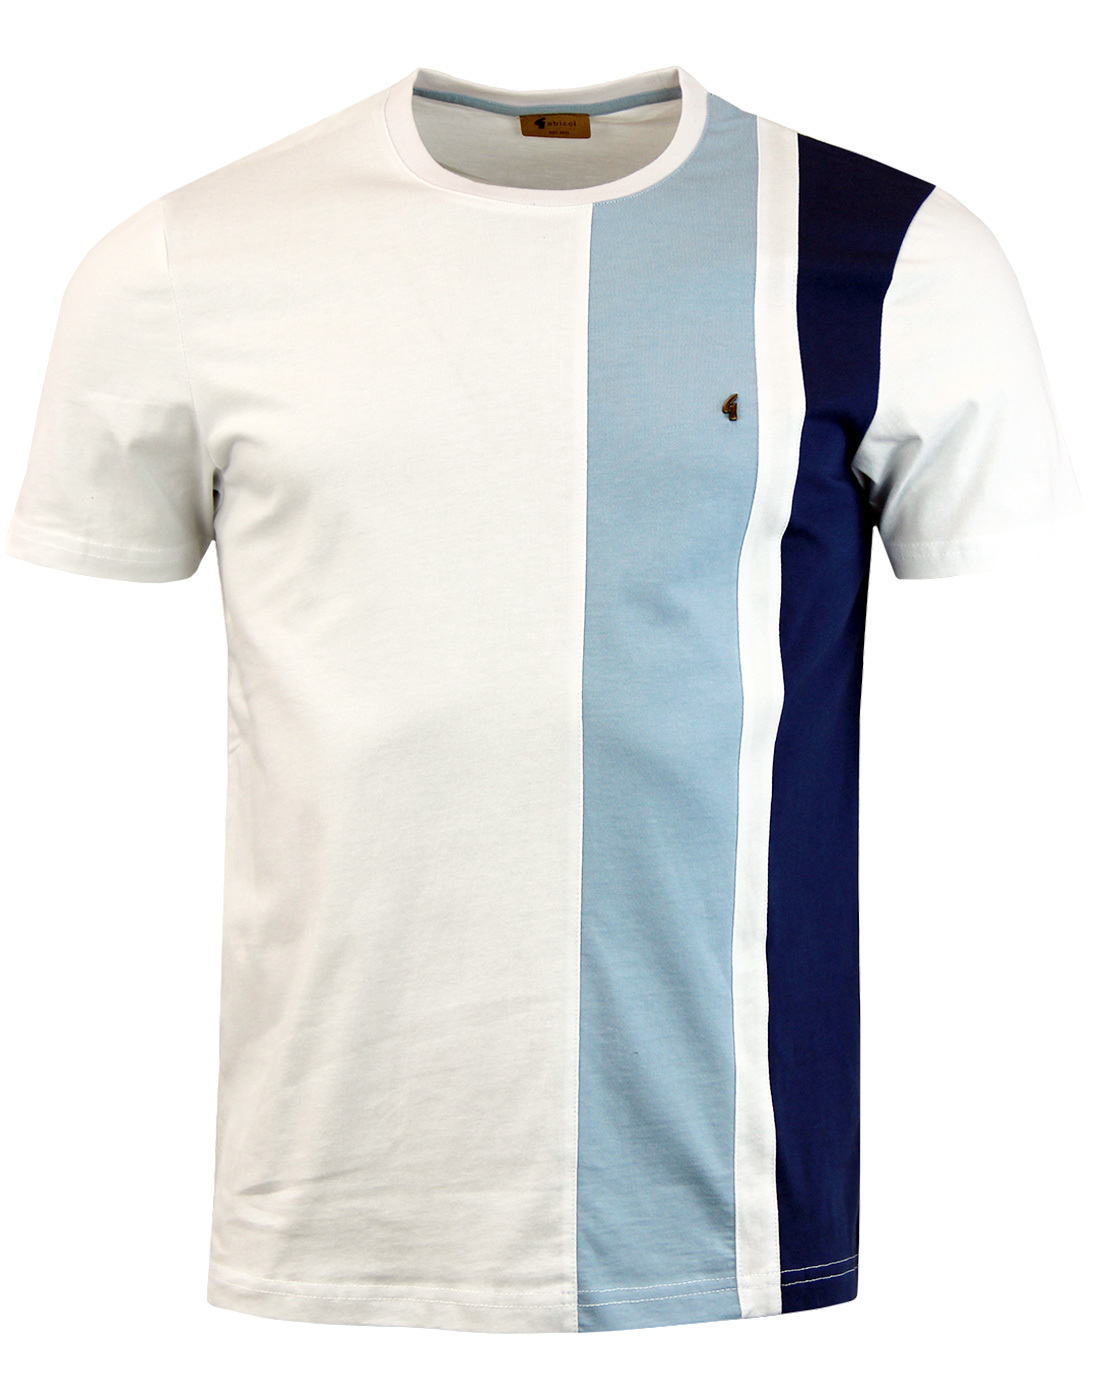 Kingston GABICCI VINTAGE Mod Panel Side Stripe Tee